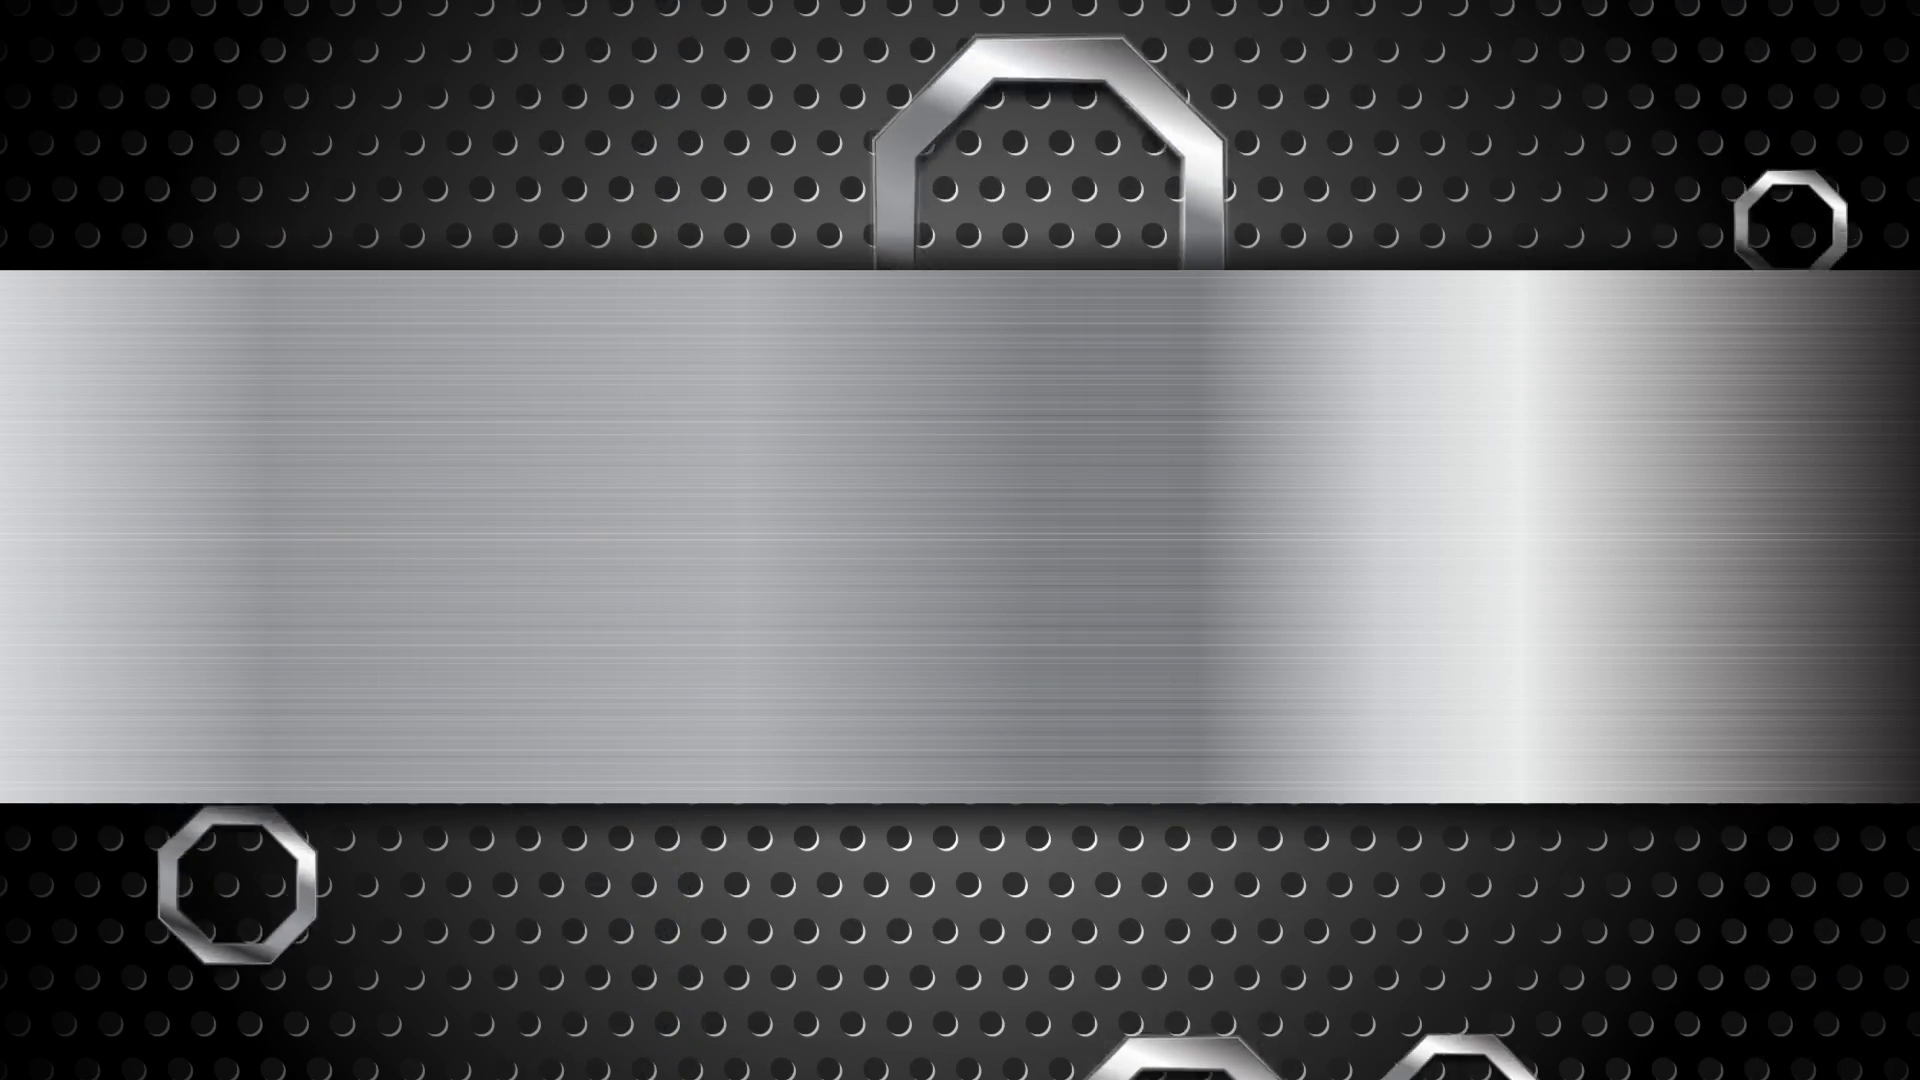 Metal Hd Png - Metal background | 106 Wallpapers